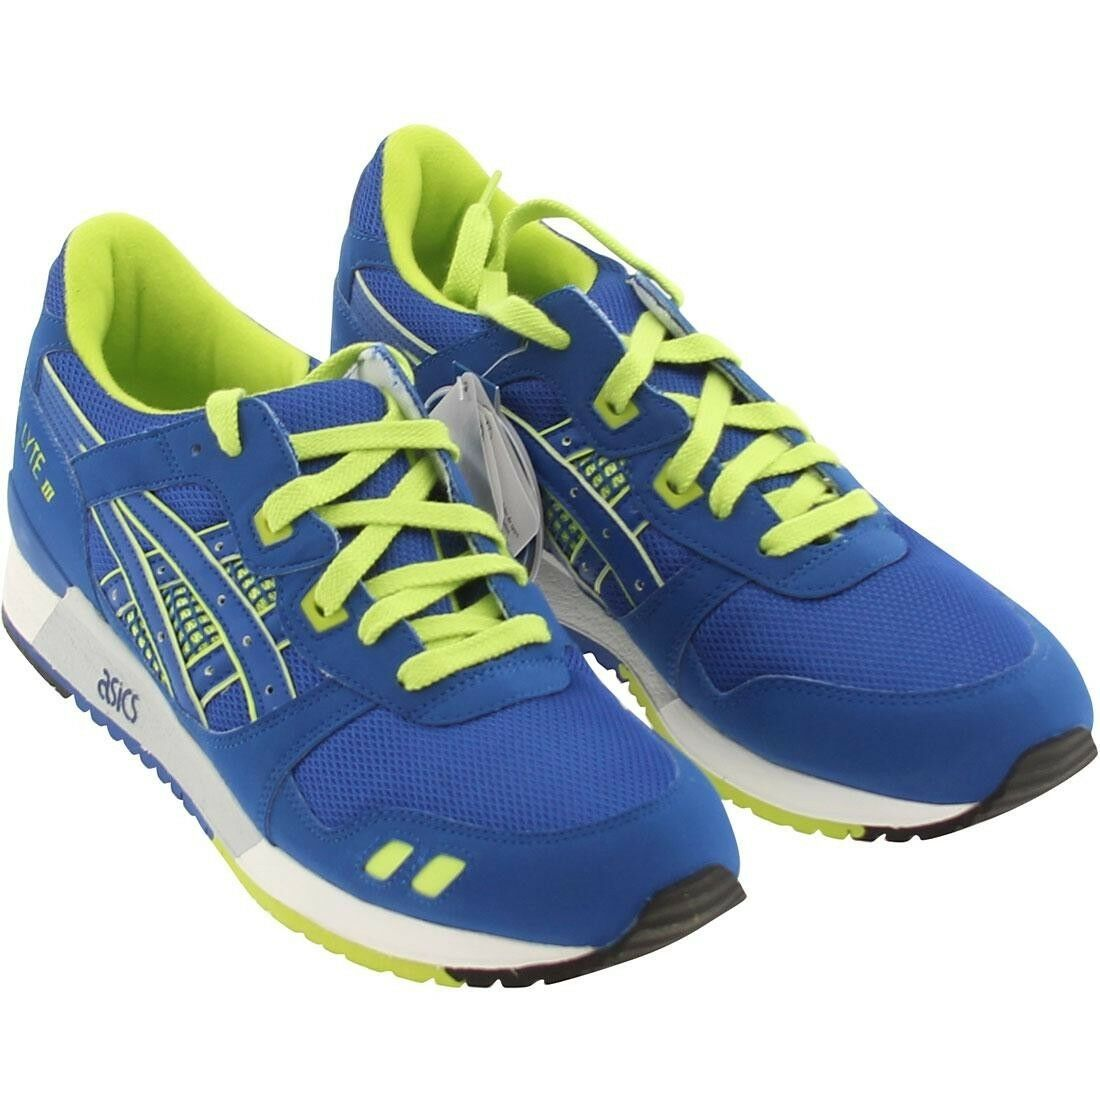 9.0 Asics Uomo Gel-Lyte III 3 royal neon green H30EK-9059